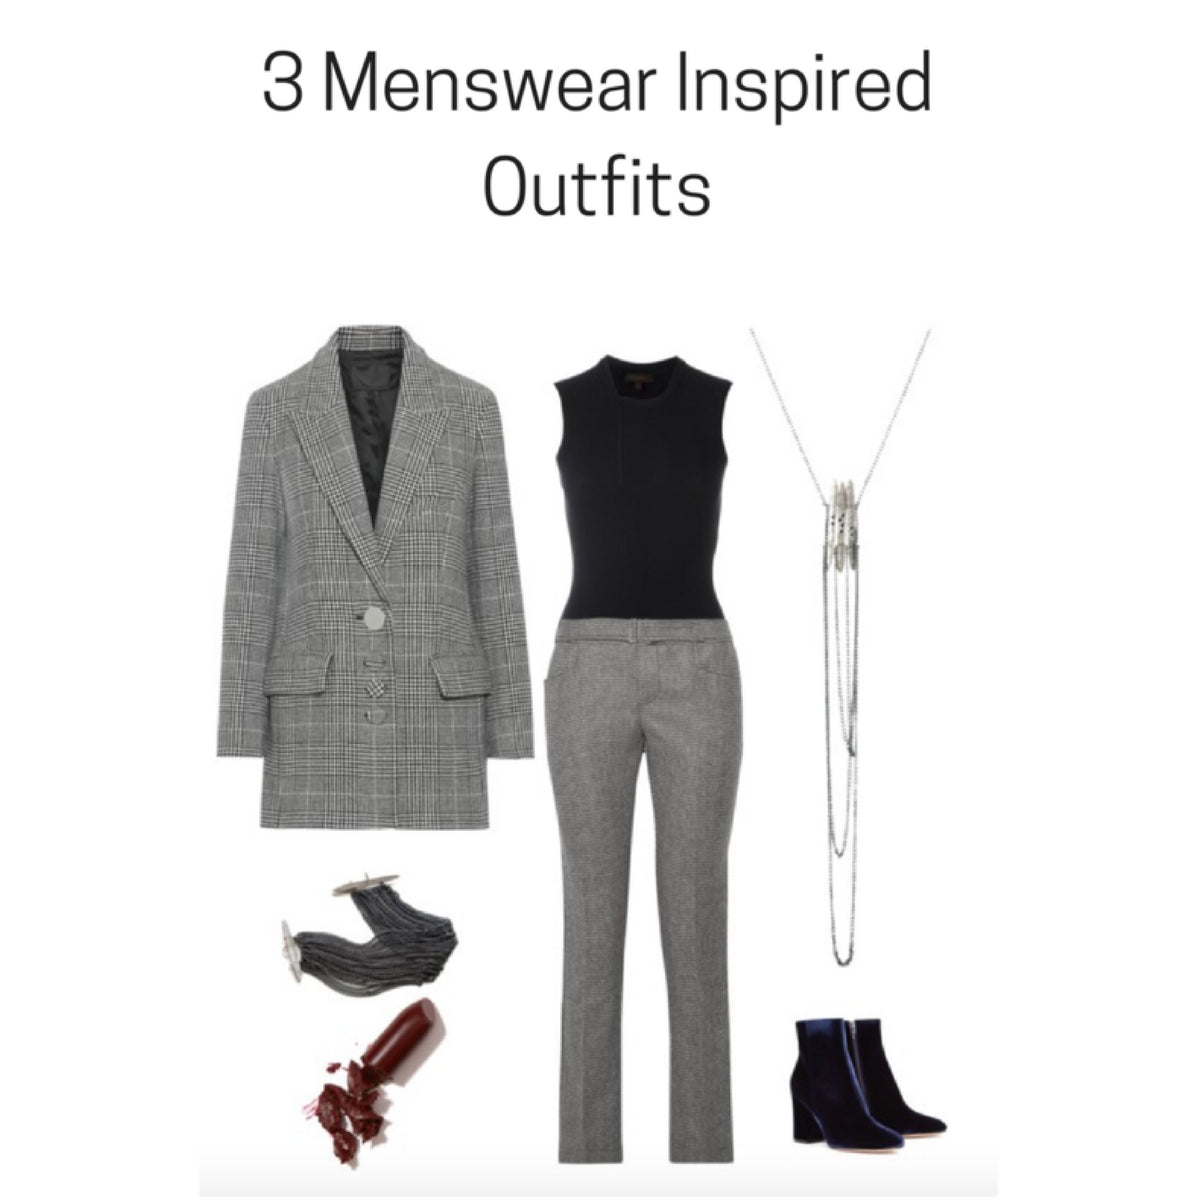 How to style the Menswear inspired look